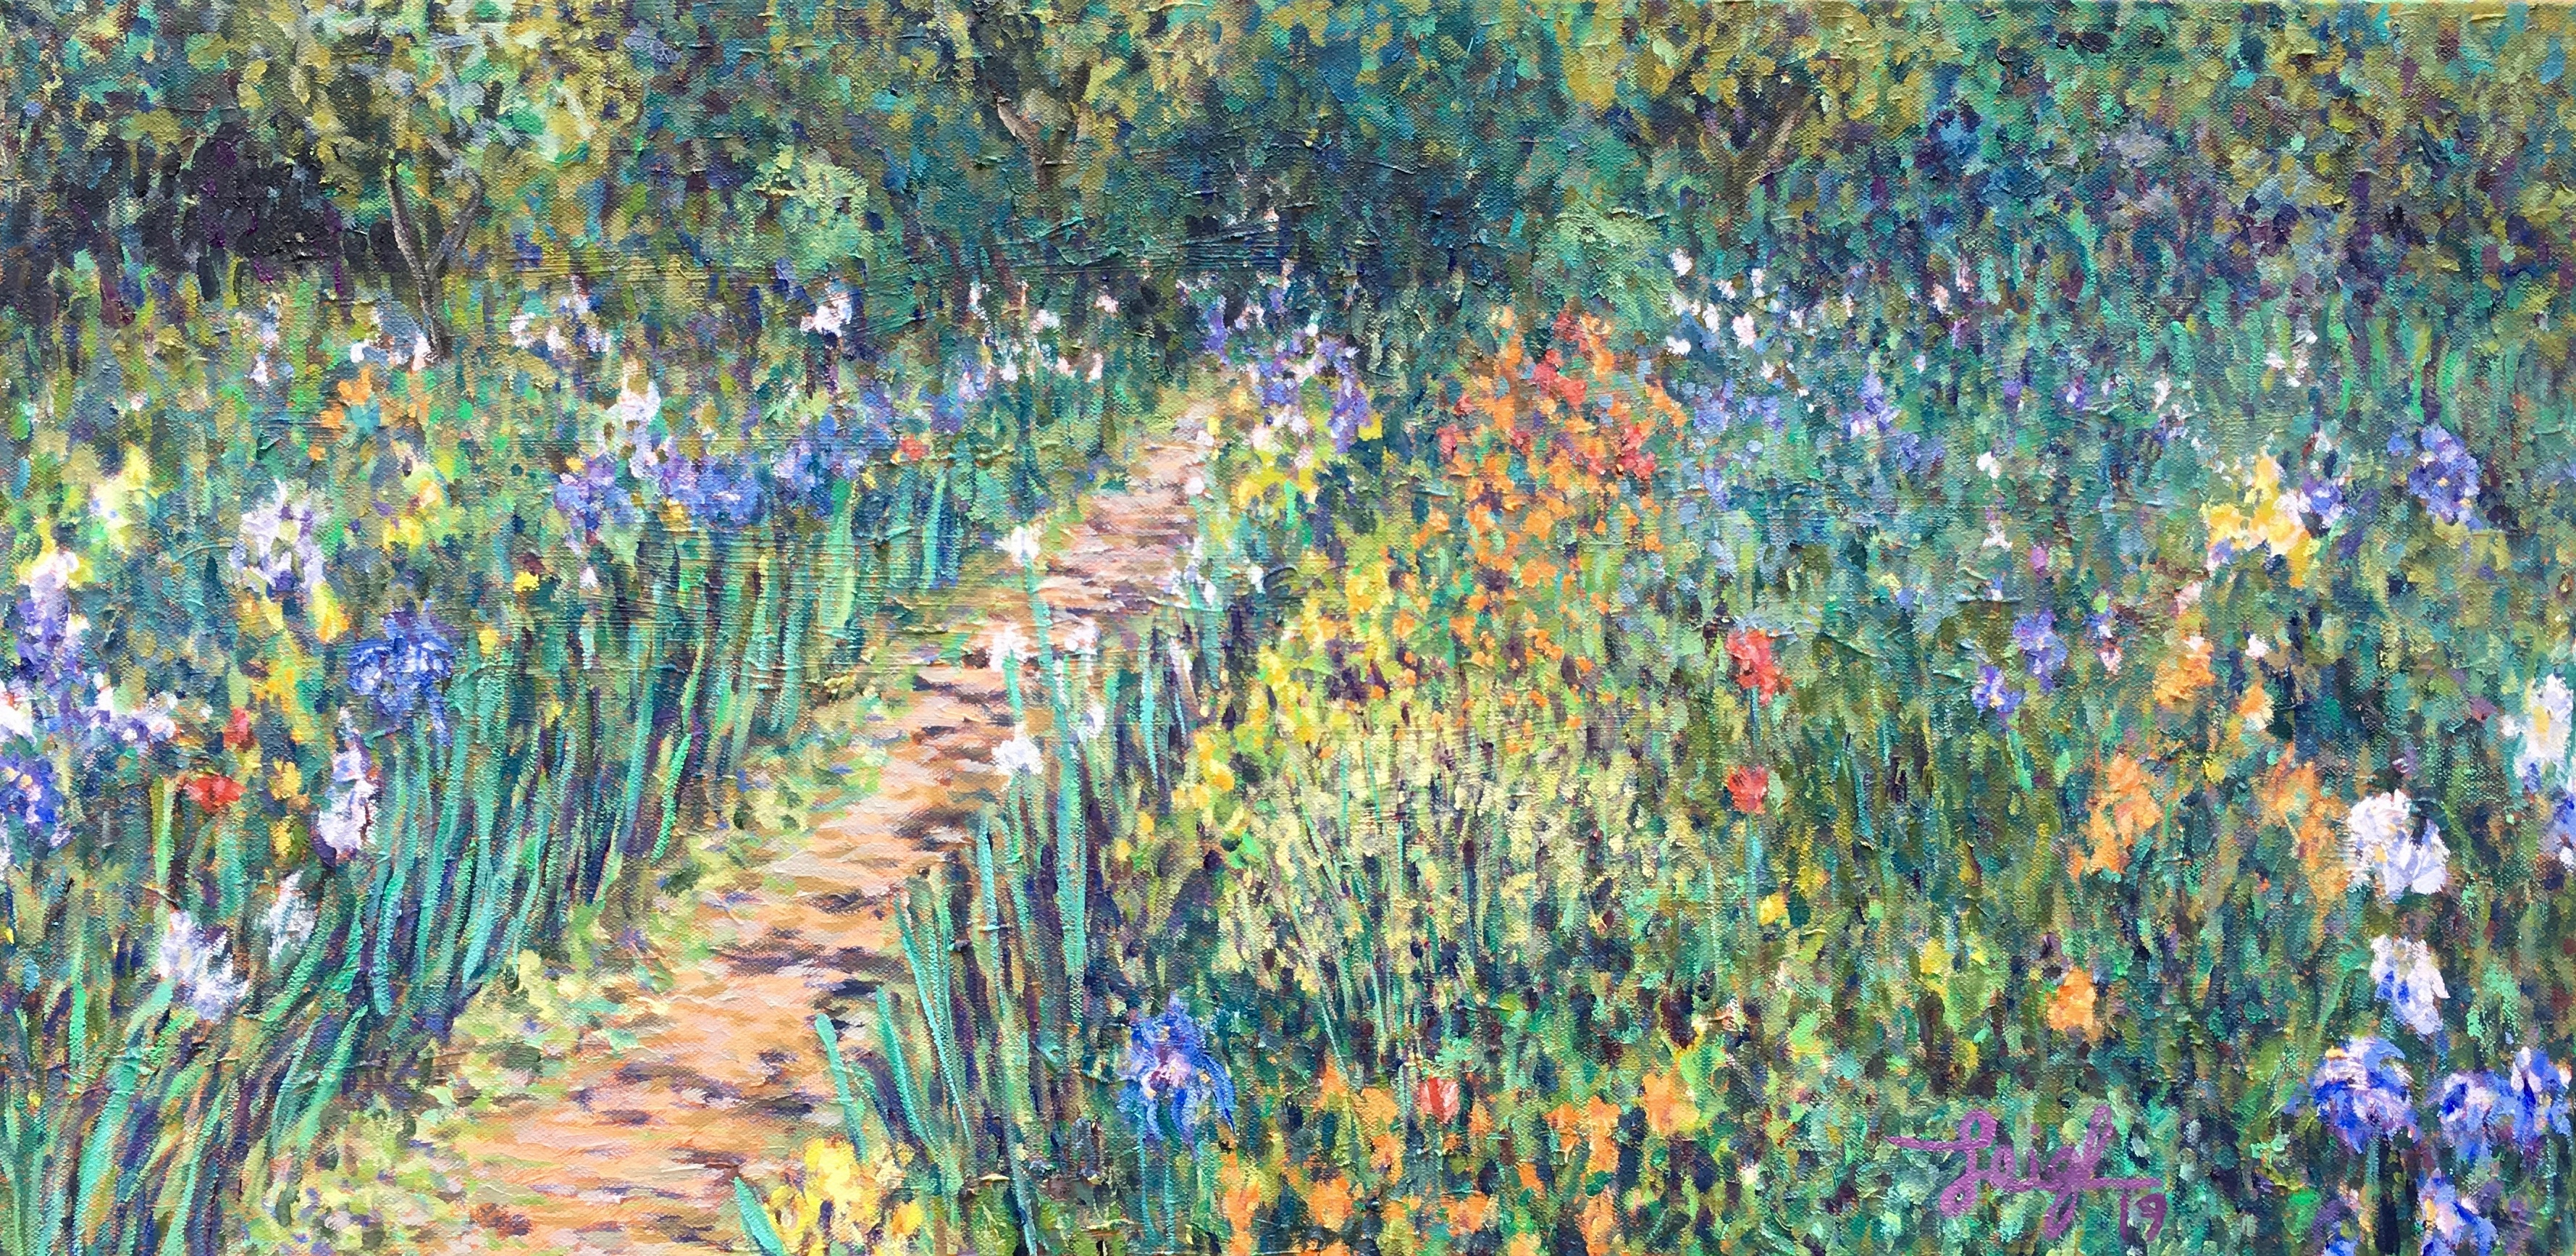 [Sorry, no longer available] Giverny Flower Garden, 36 x 18  •  2019